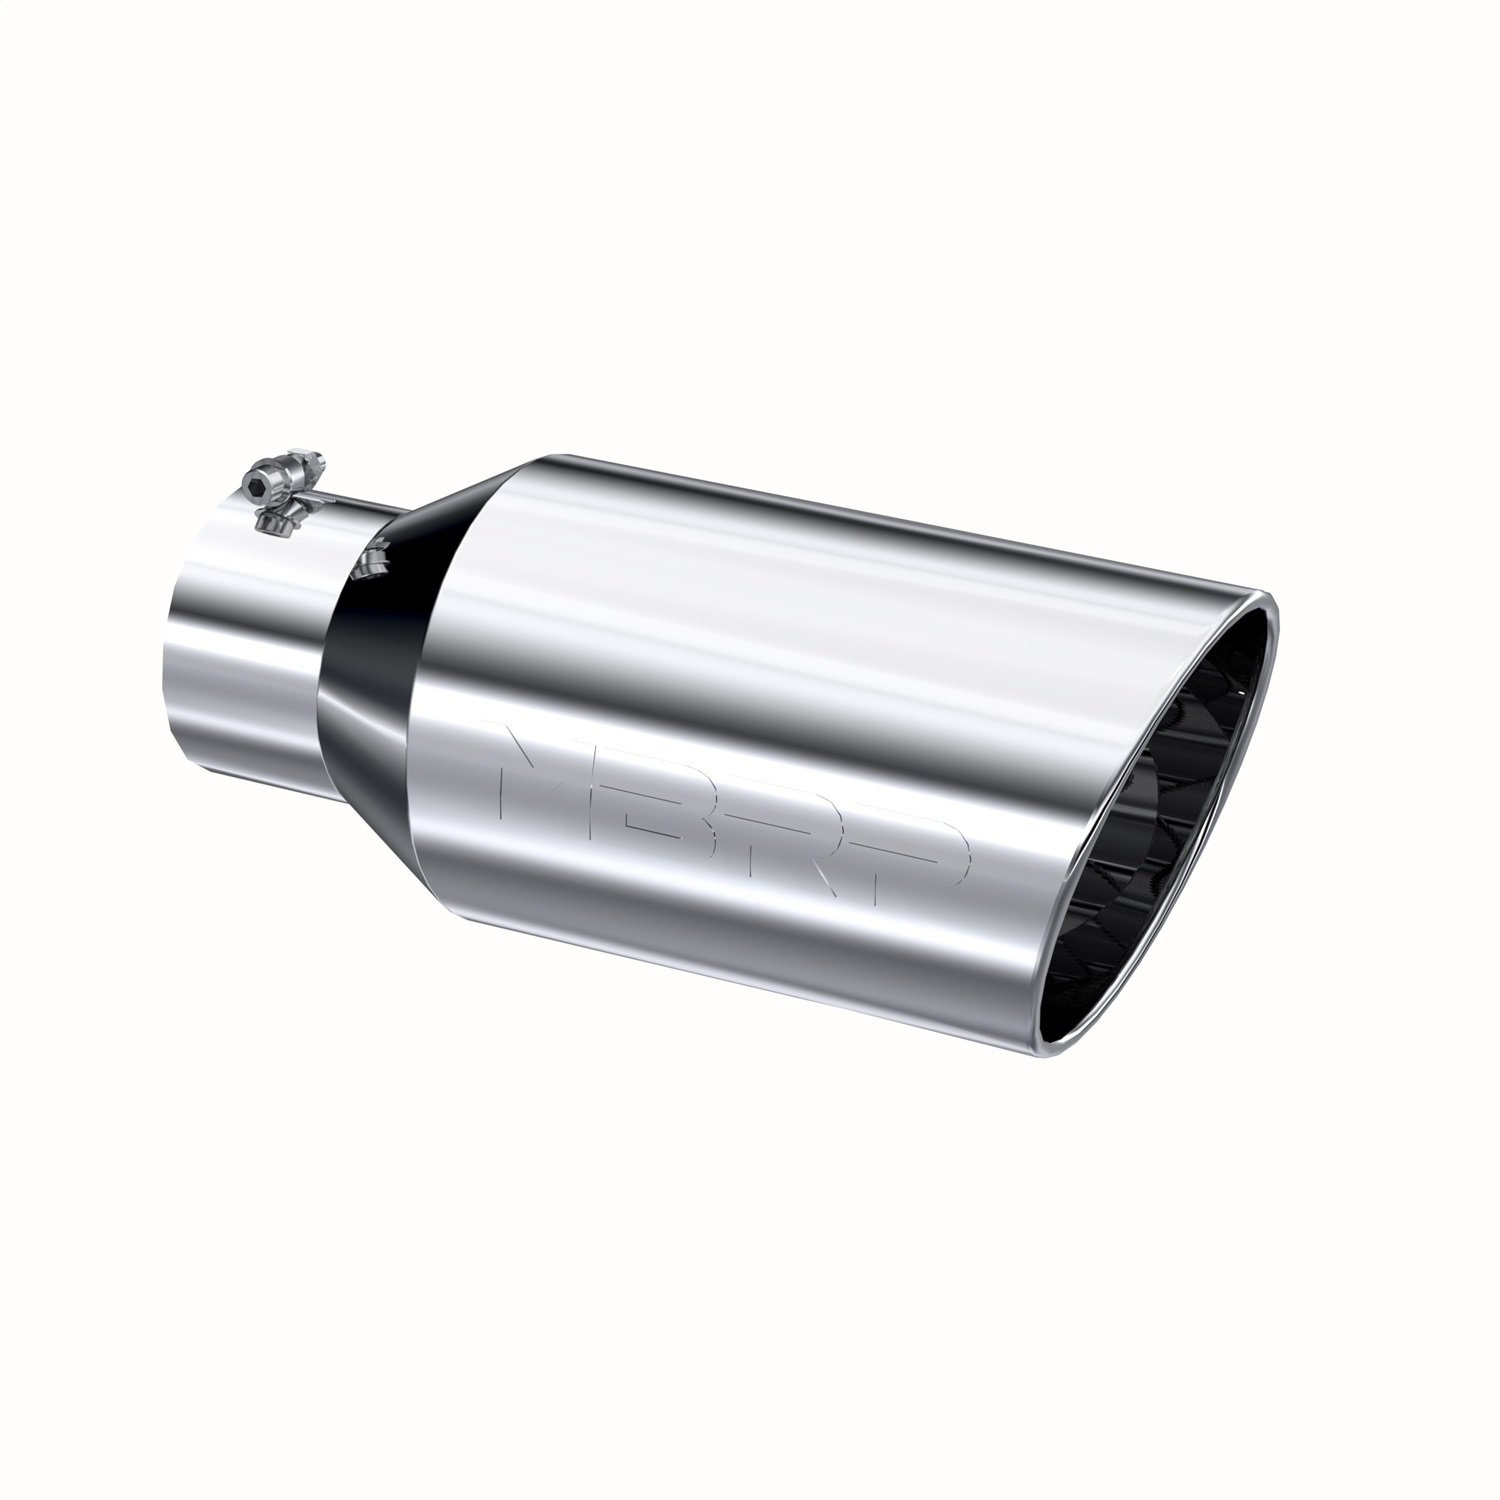 MBRP Exhaust Exhaust Tail Pipe Tip (T5129)